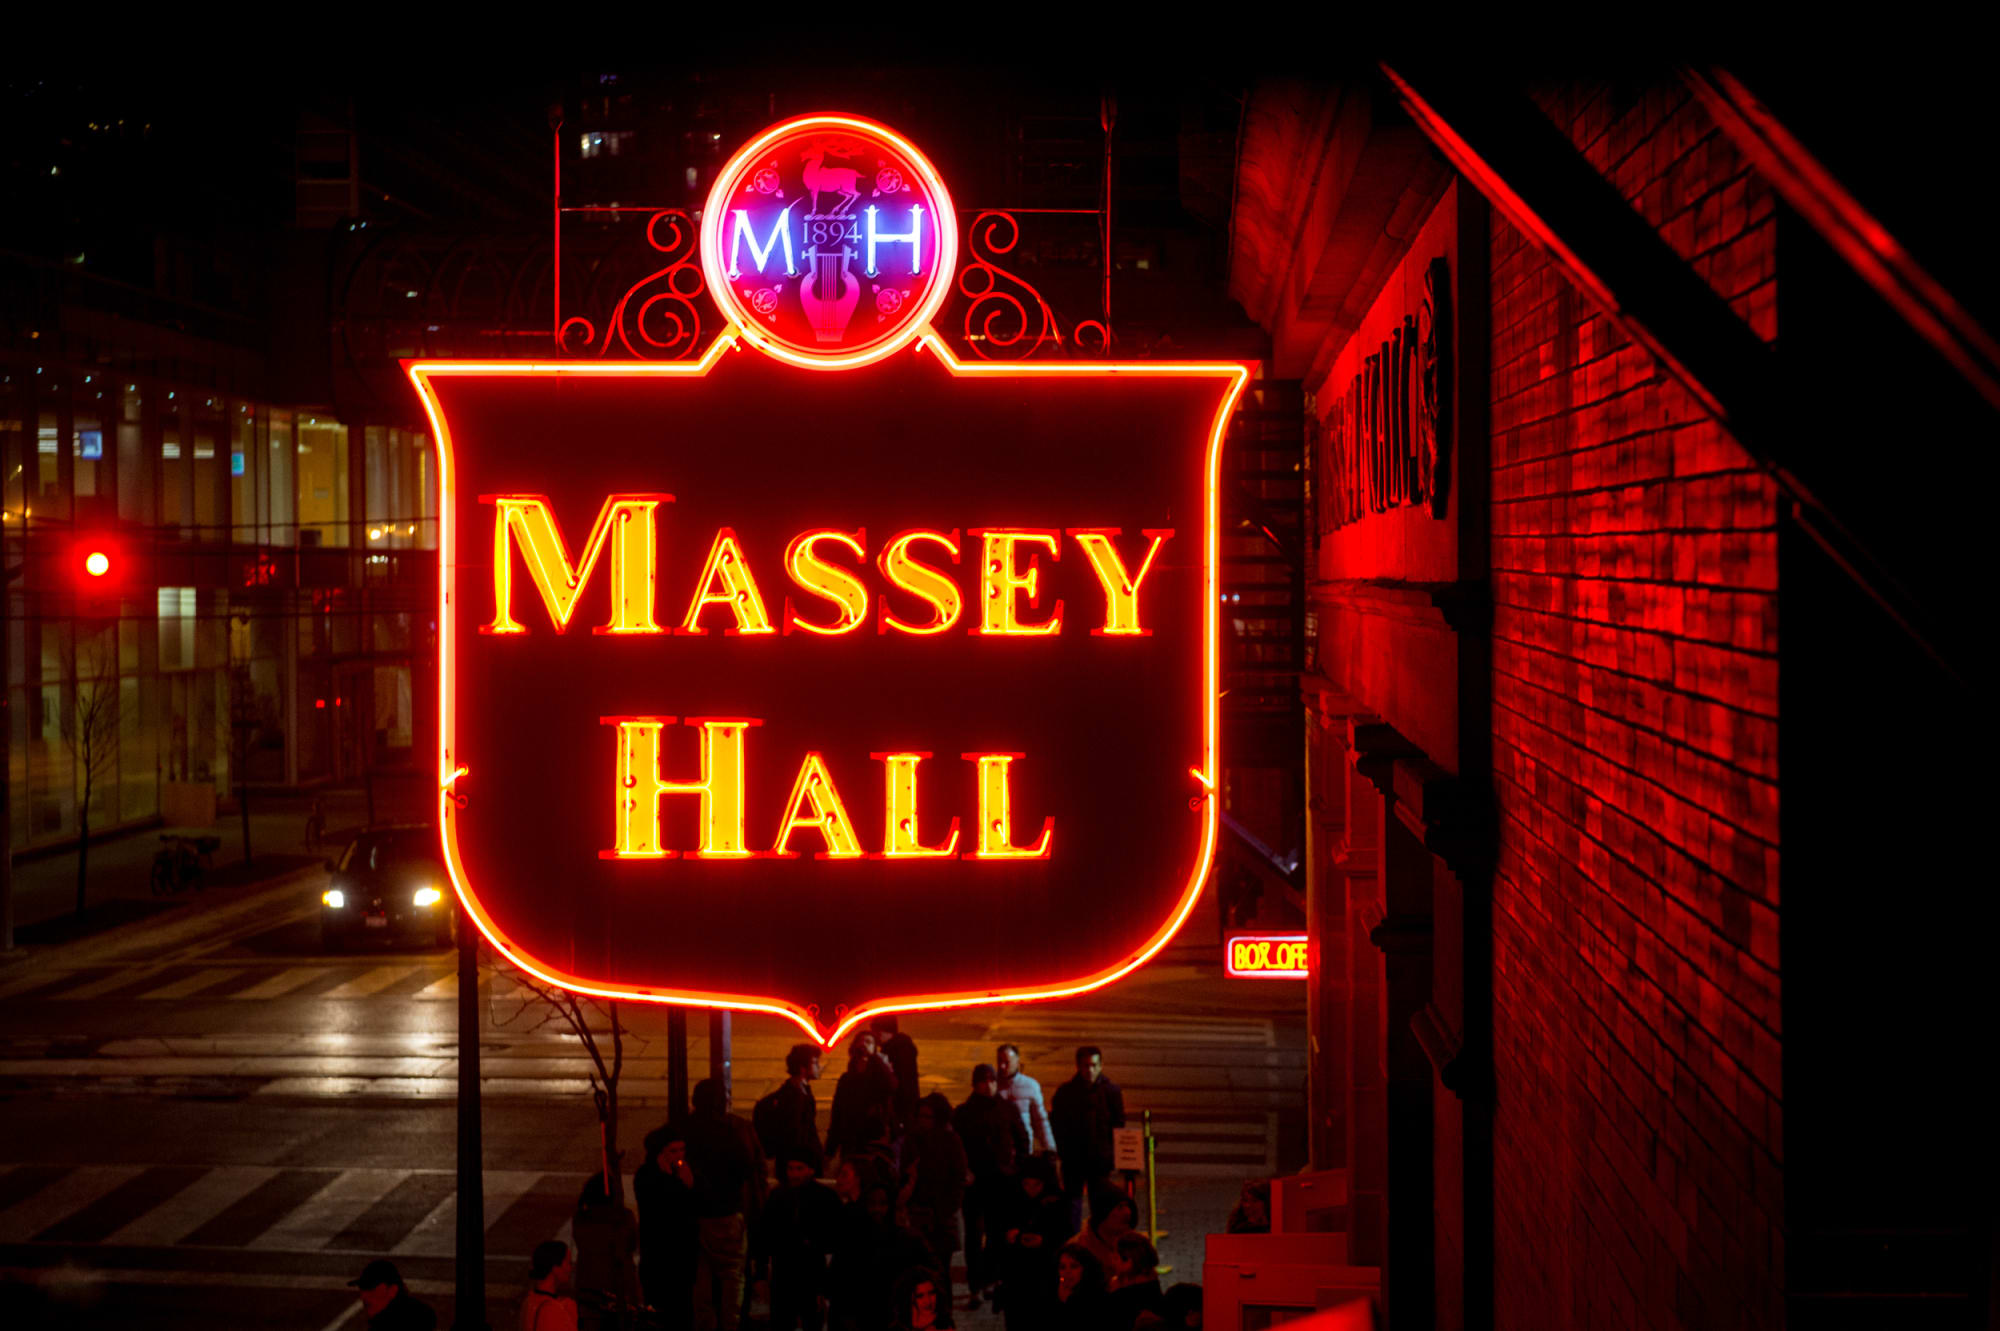 The iconic Massey Hall neon sign